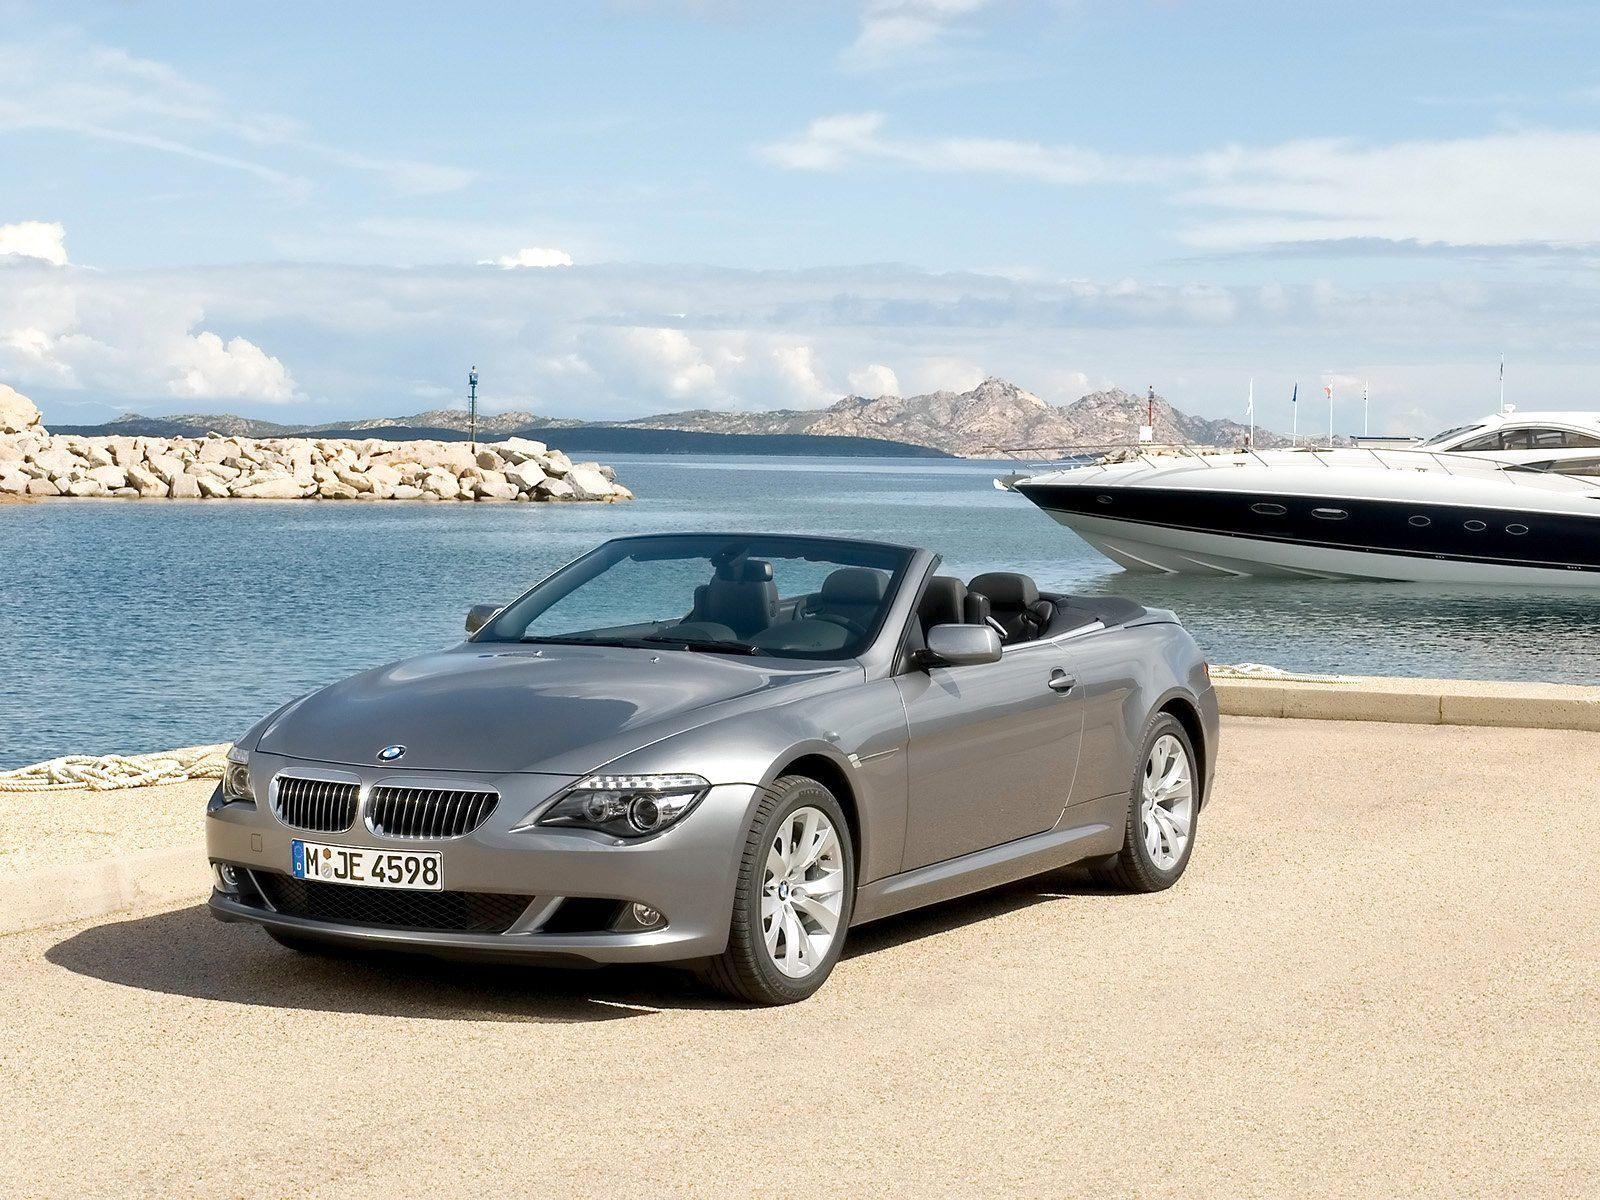 2008 BMW 6 Series Wallpaper 19 - 1600x1200